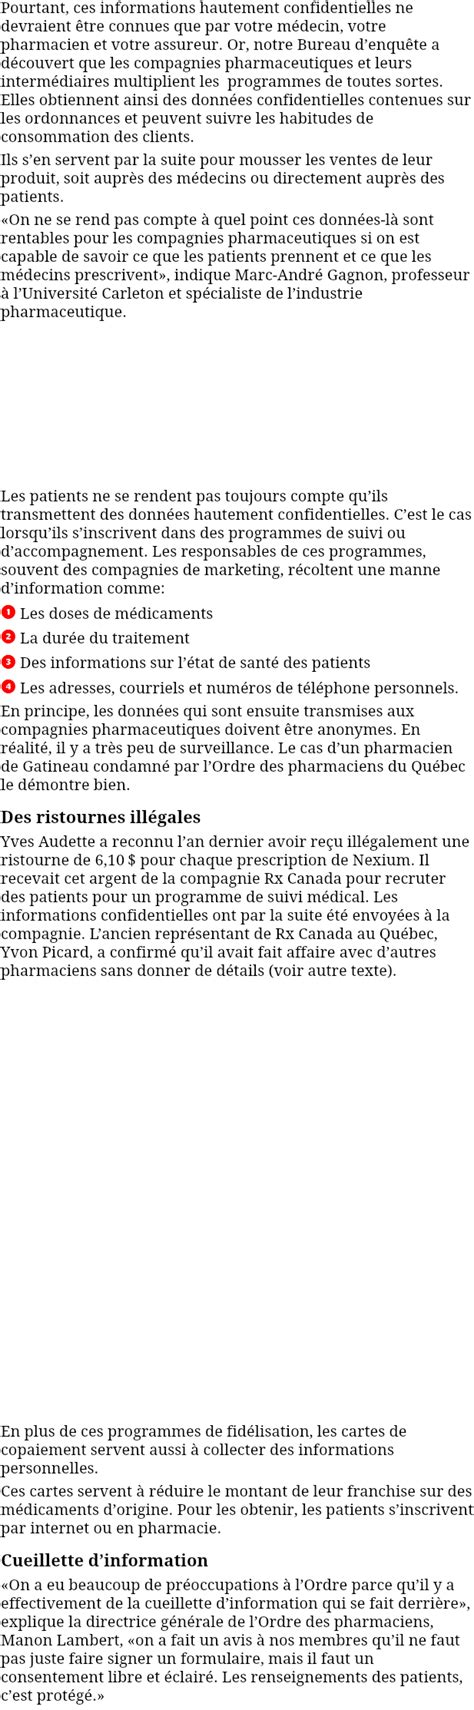 pharmaciens vendent vos prescriptions